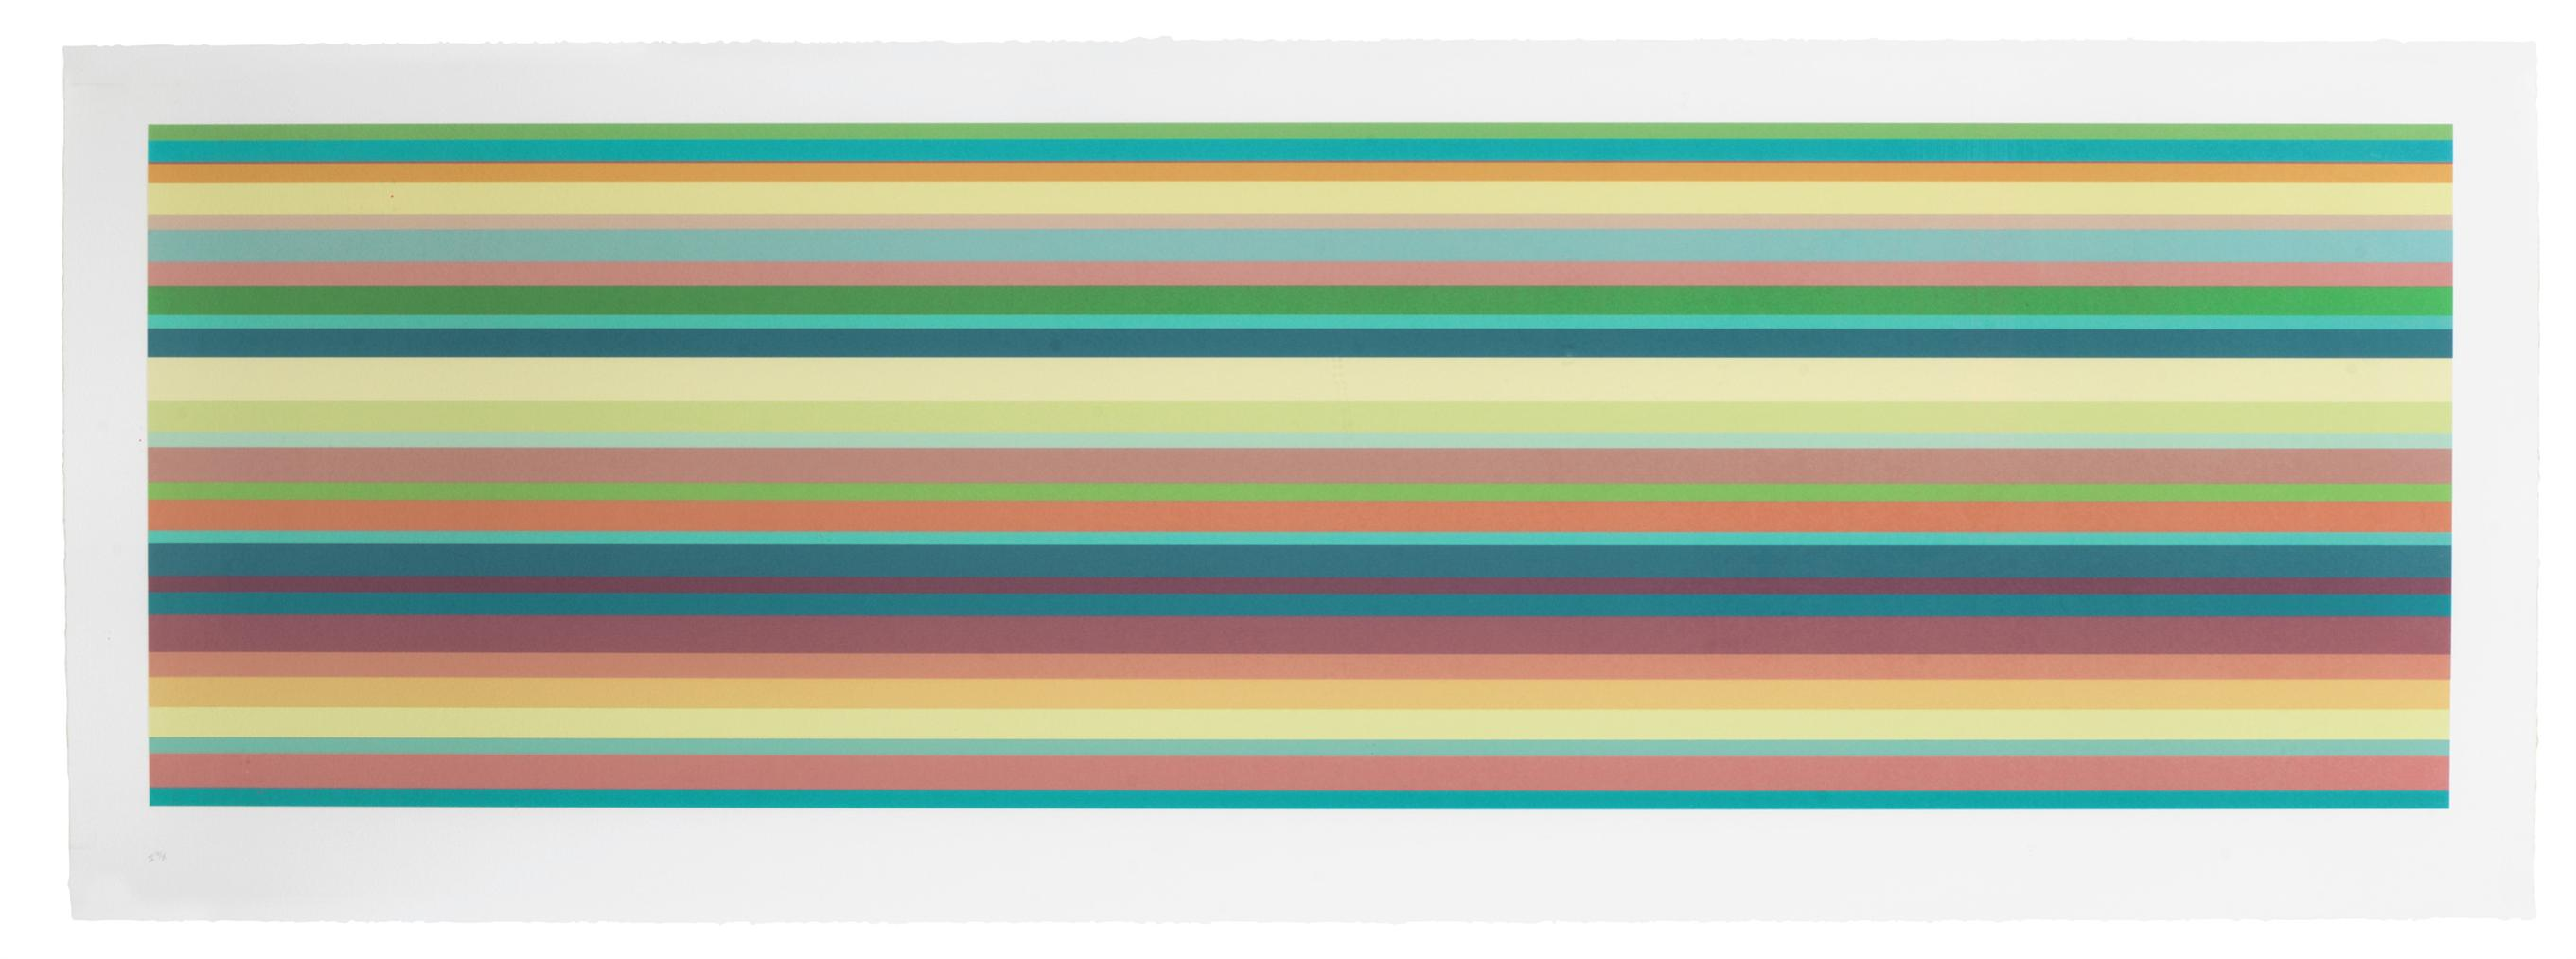 Kenneth Noland-Quartet I-IV-2001